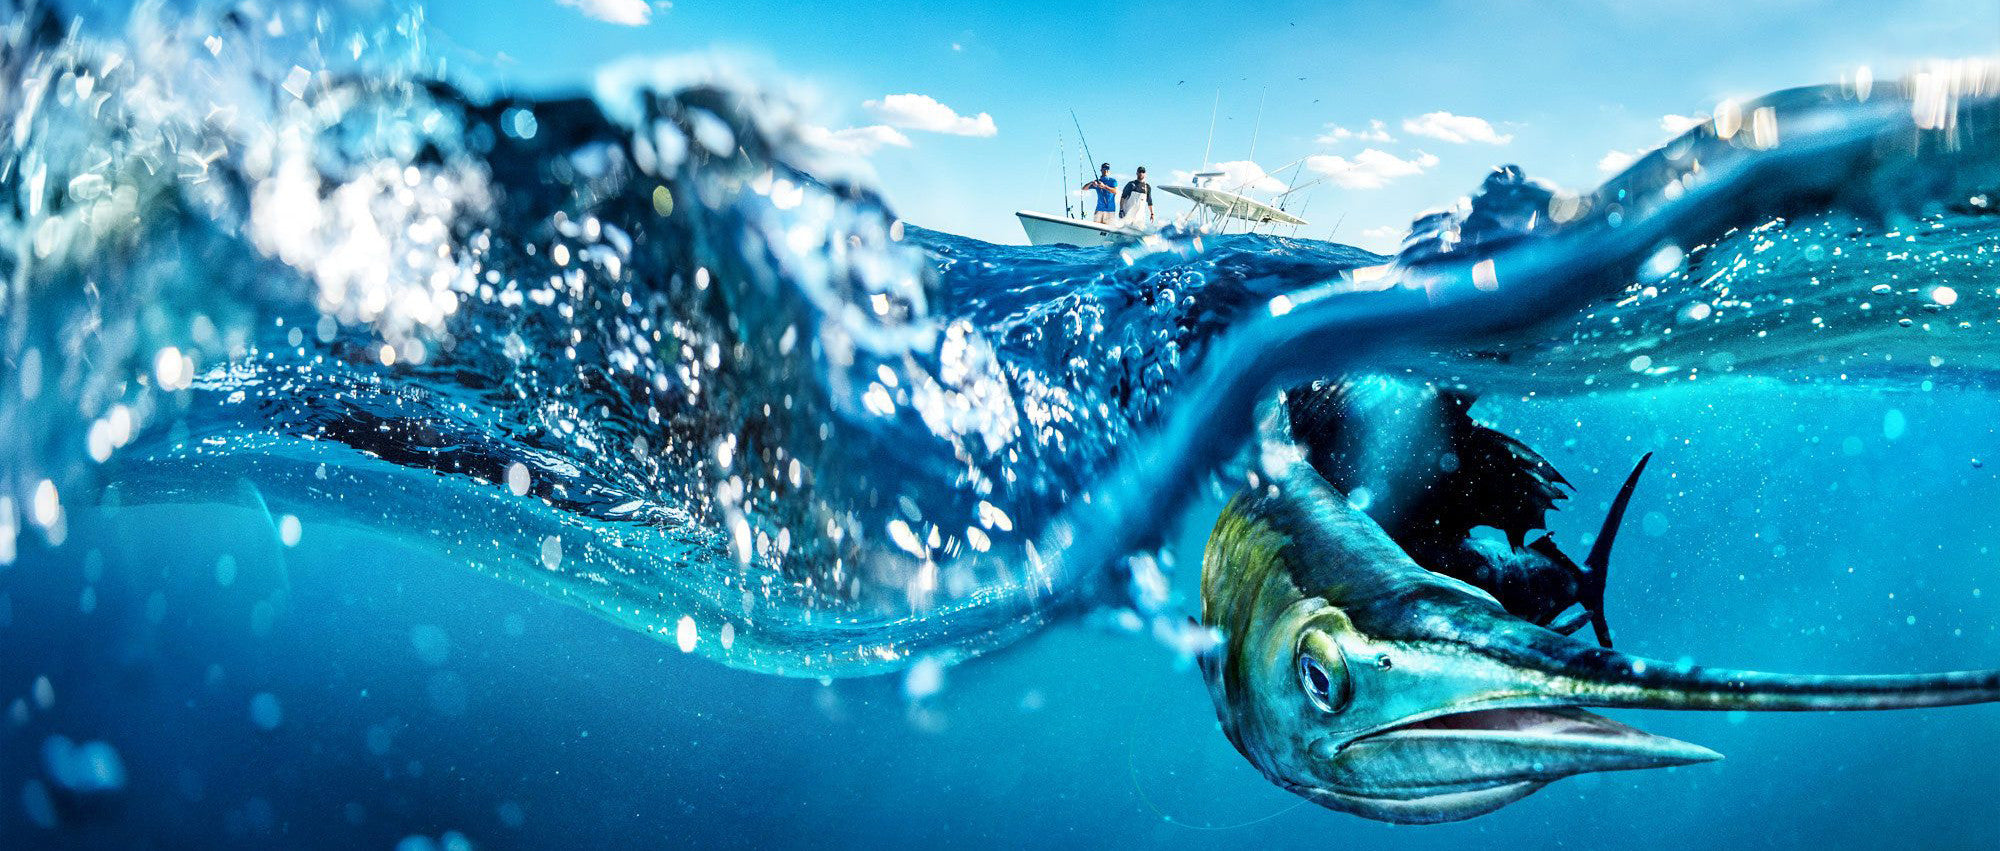 Underwater camera for luxury yachts, fishing boats. Sea what lies under your boat